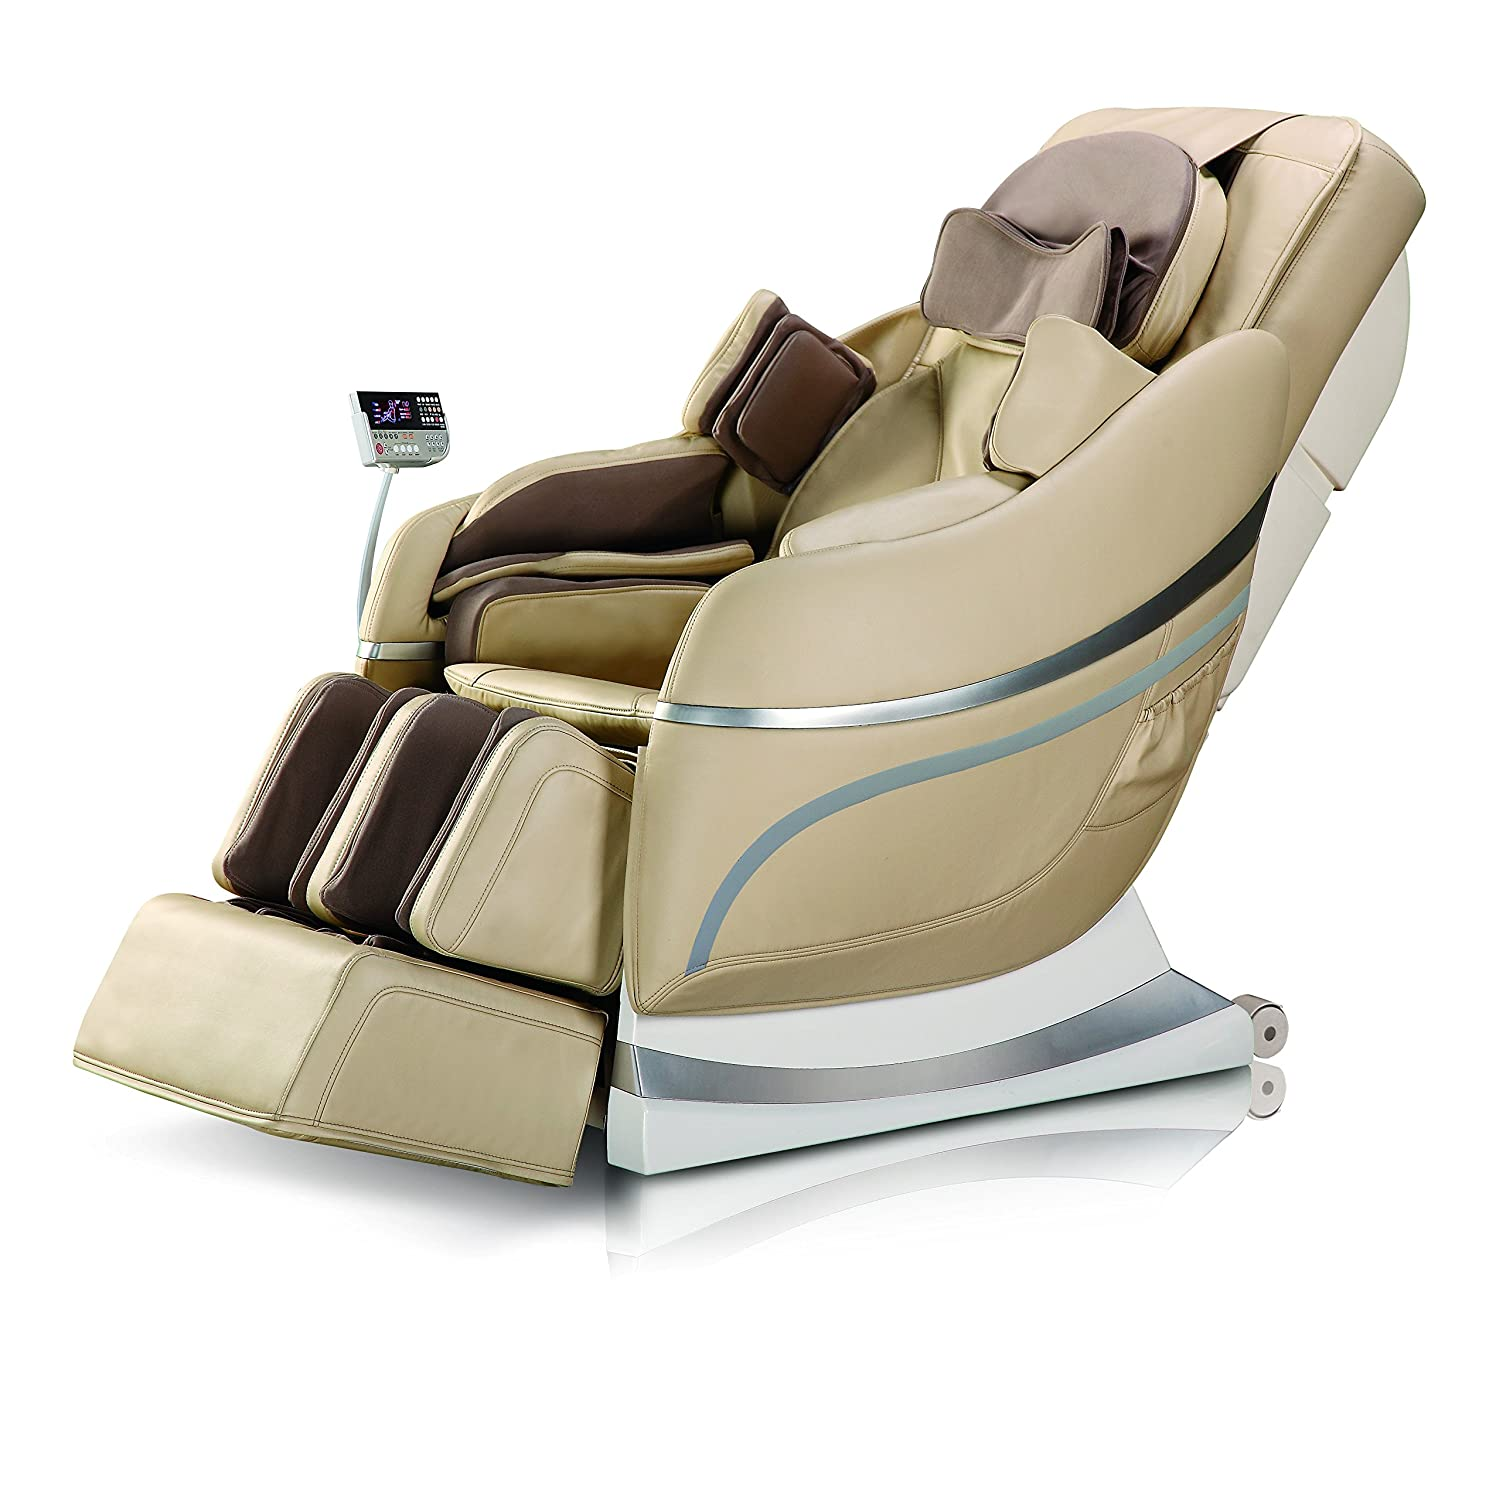 Amazon iRest A33 Massage Chair by Life Chairs Tan Kitchen